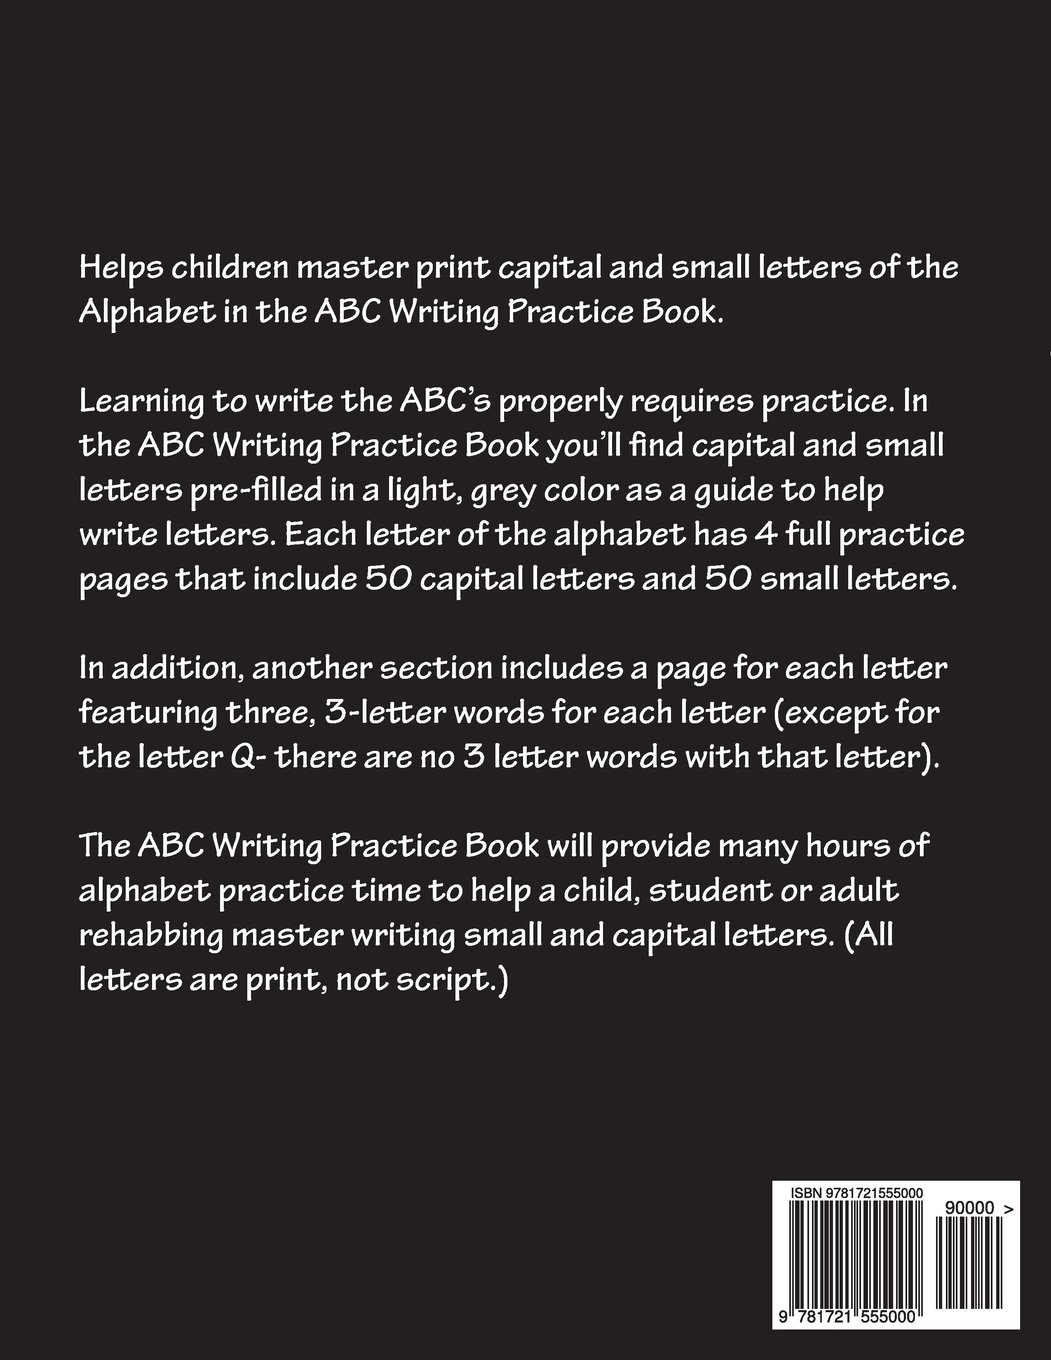 Abc Writing Practice Book Help Your Child Master Print Capital And